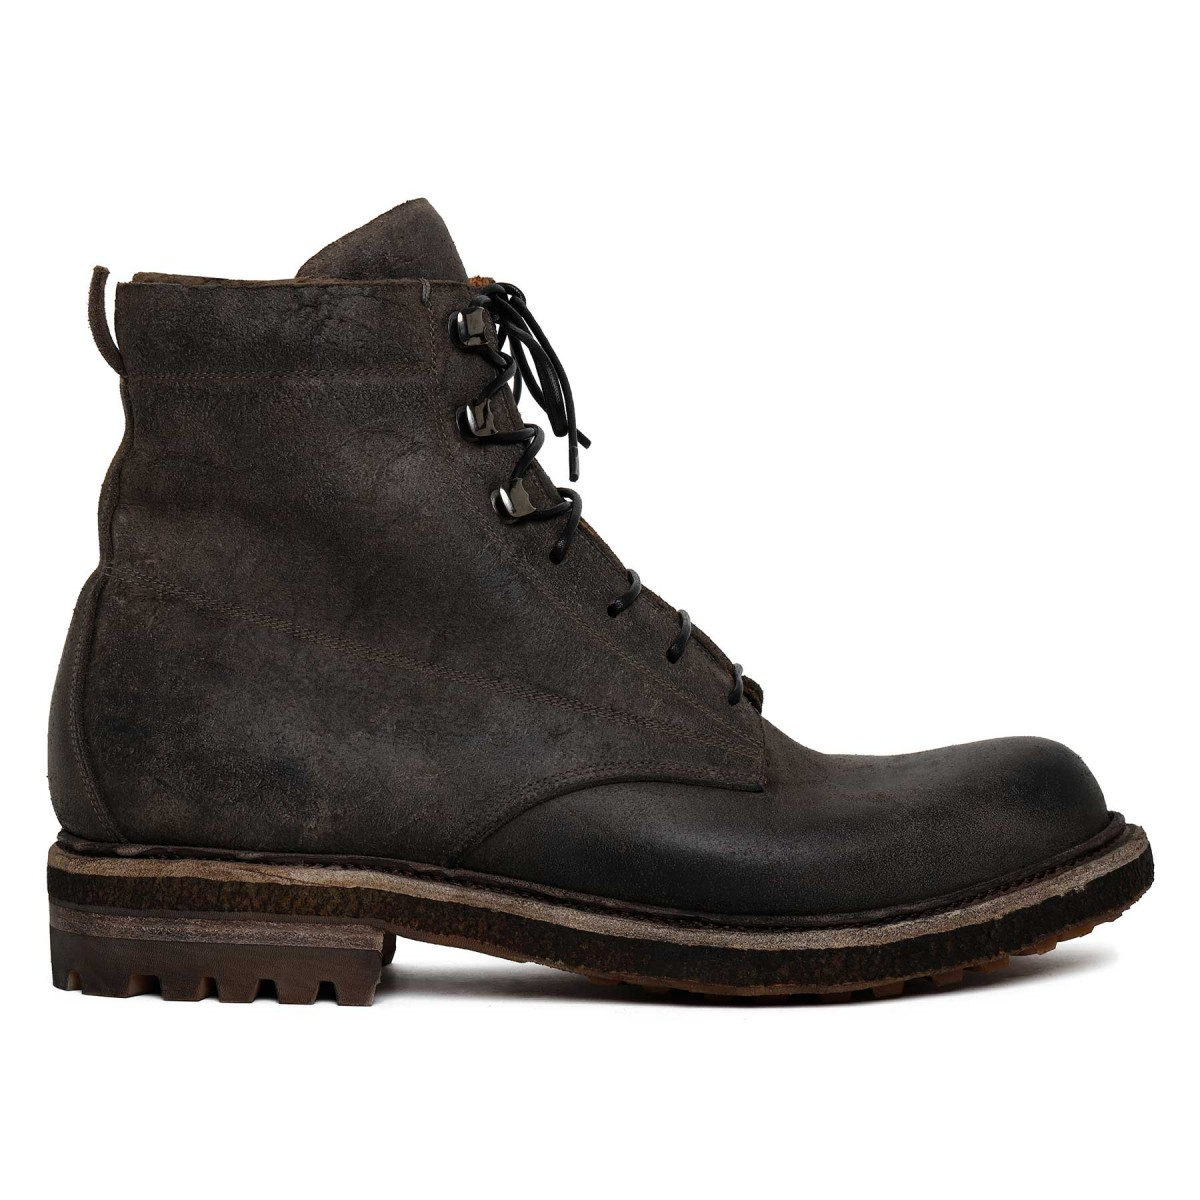 Gray waxed suede leather booties